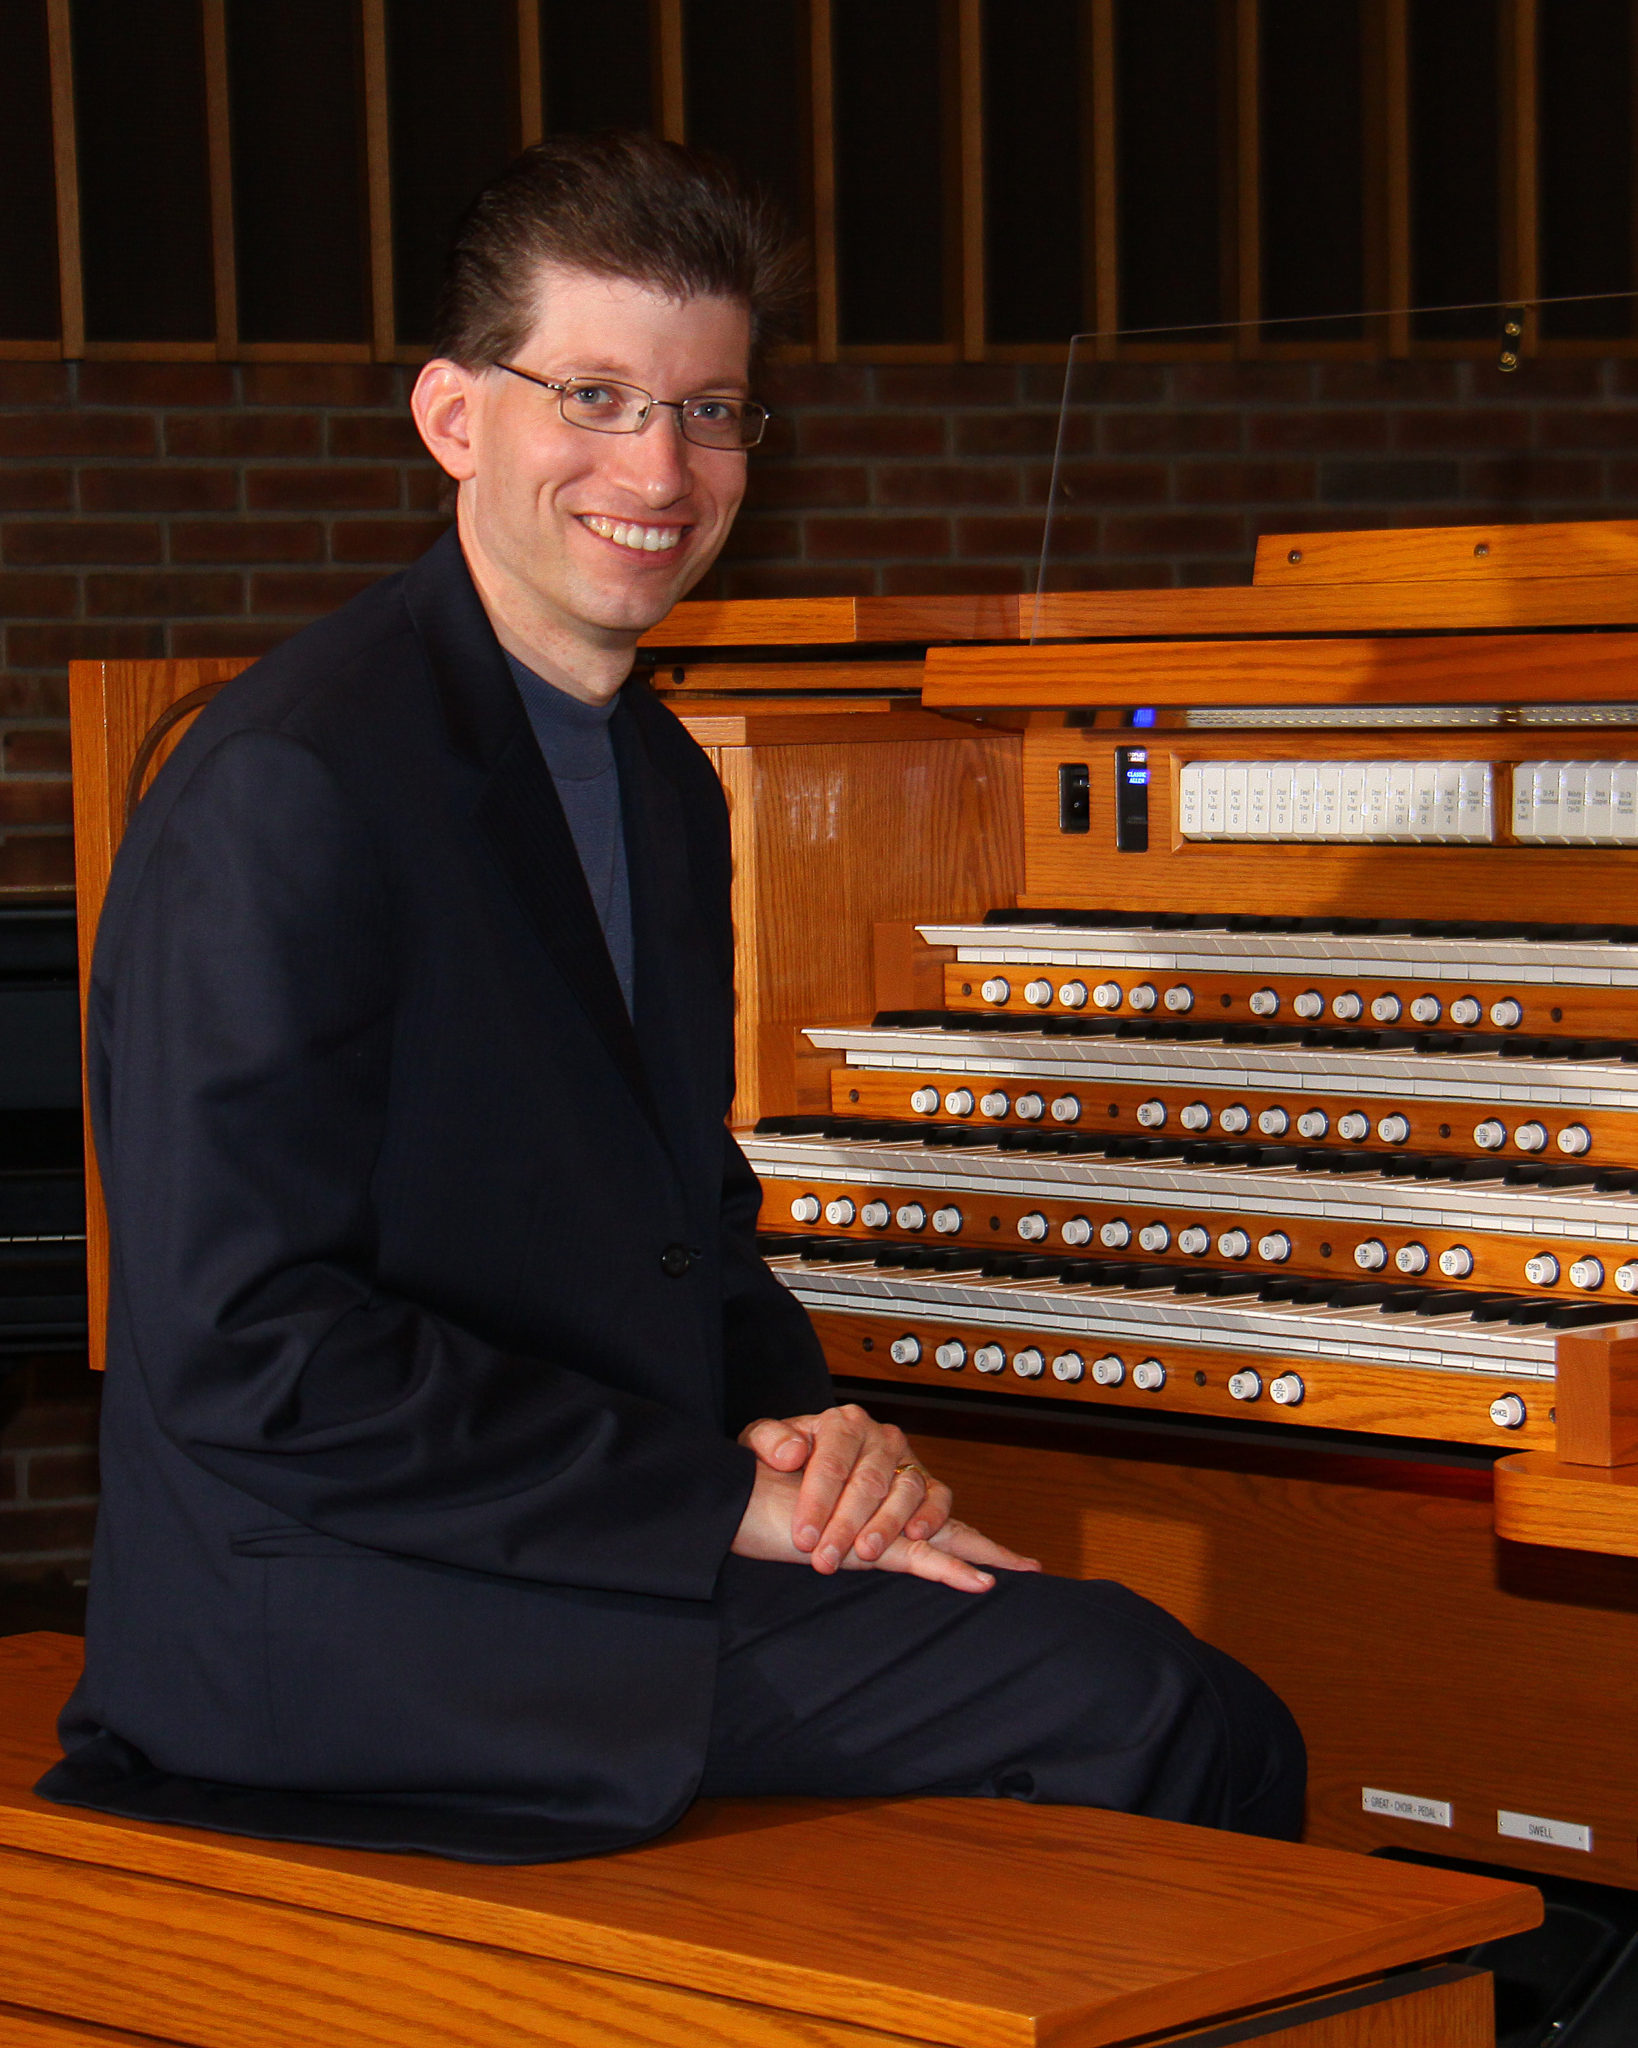 Allen Organs of Chicago Hosts Free Hymn Playing and Registration Workshop with Aram Basmadjian 8/21/18.